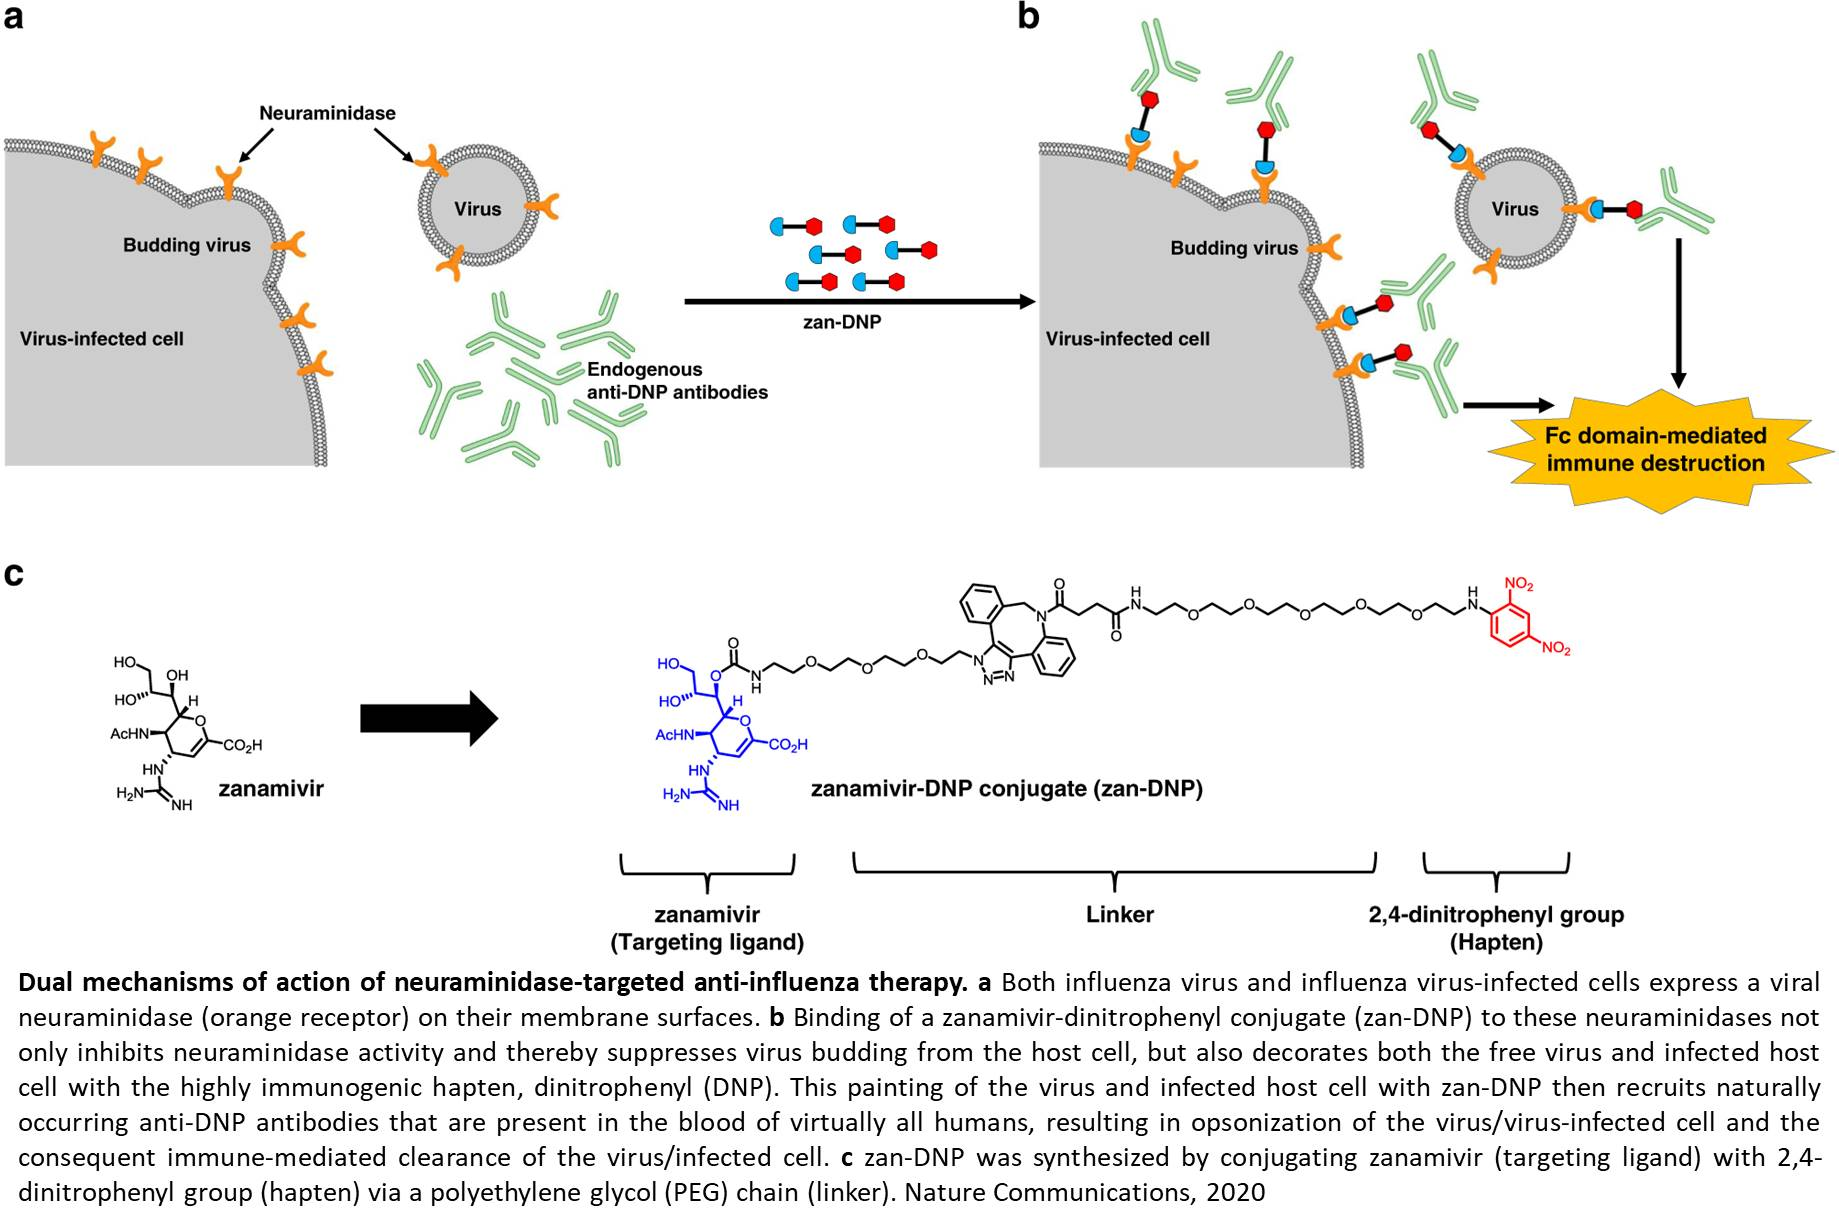 A universal dual mechanism immunotherapy for the treatment of influenza virus infections